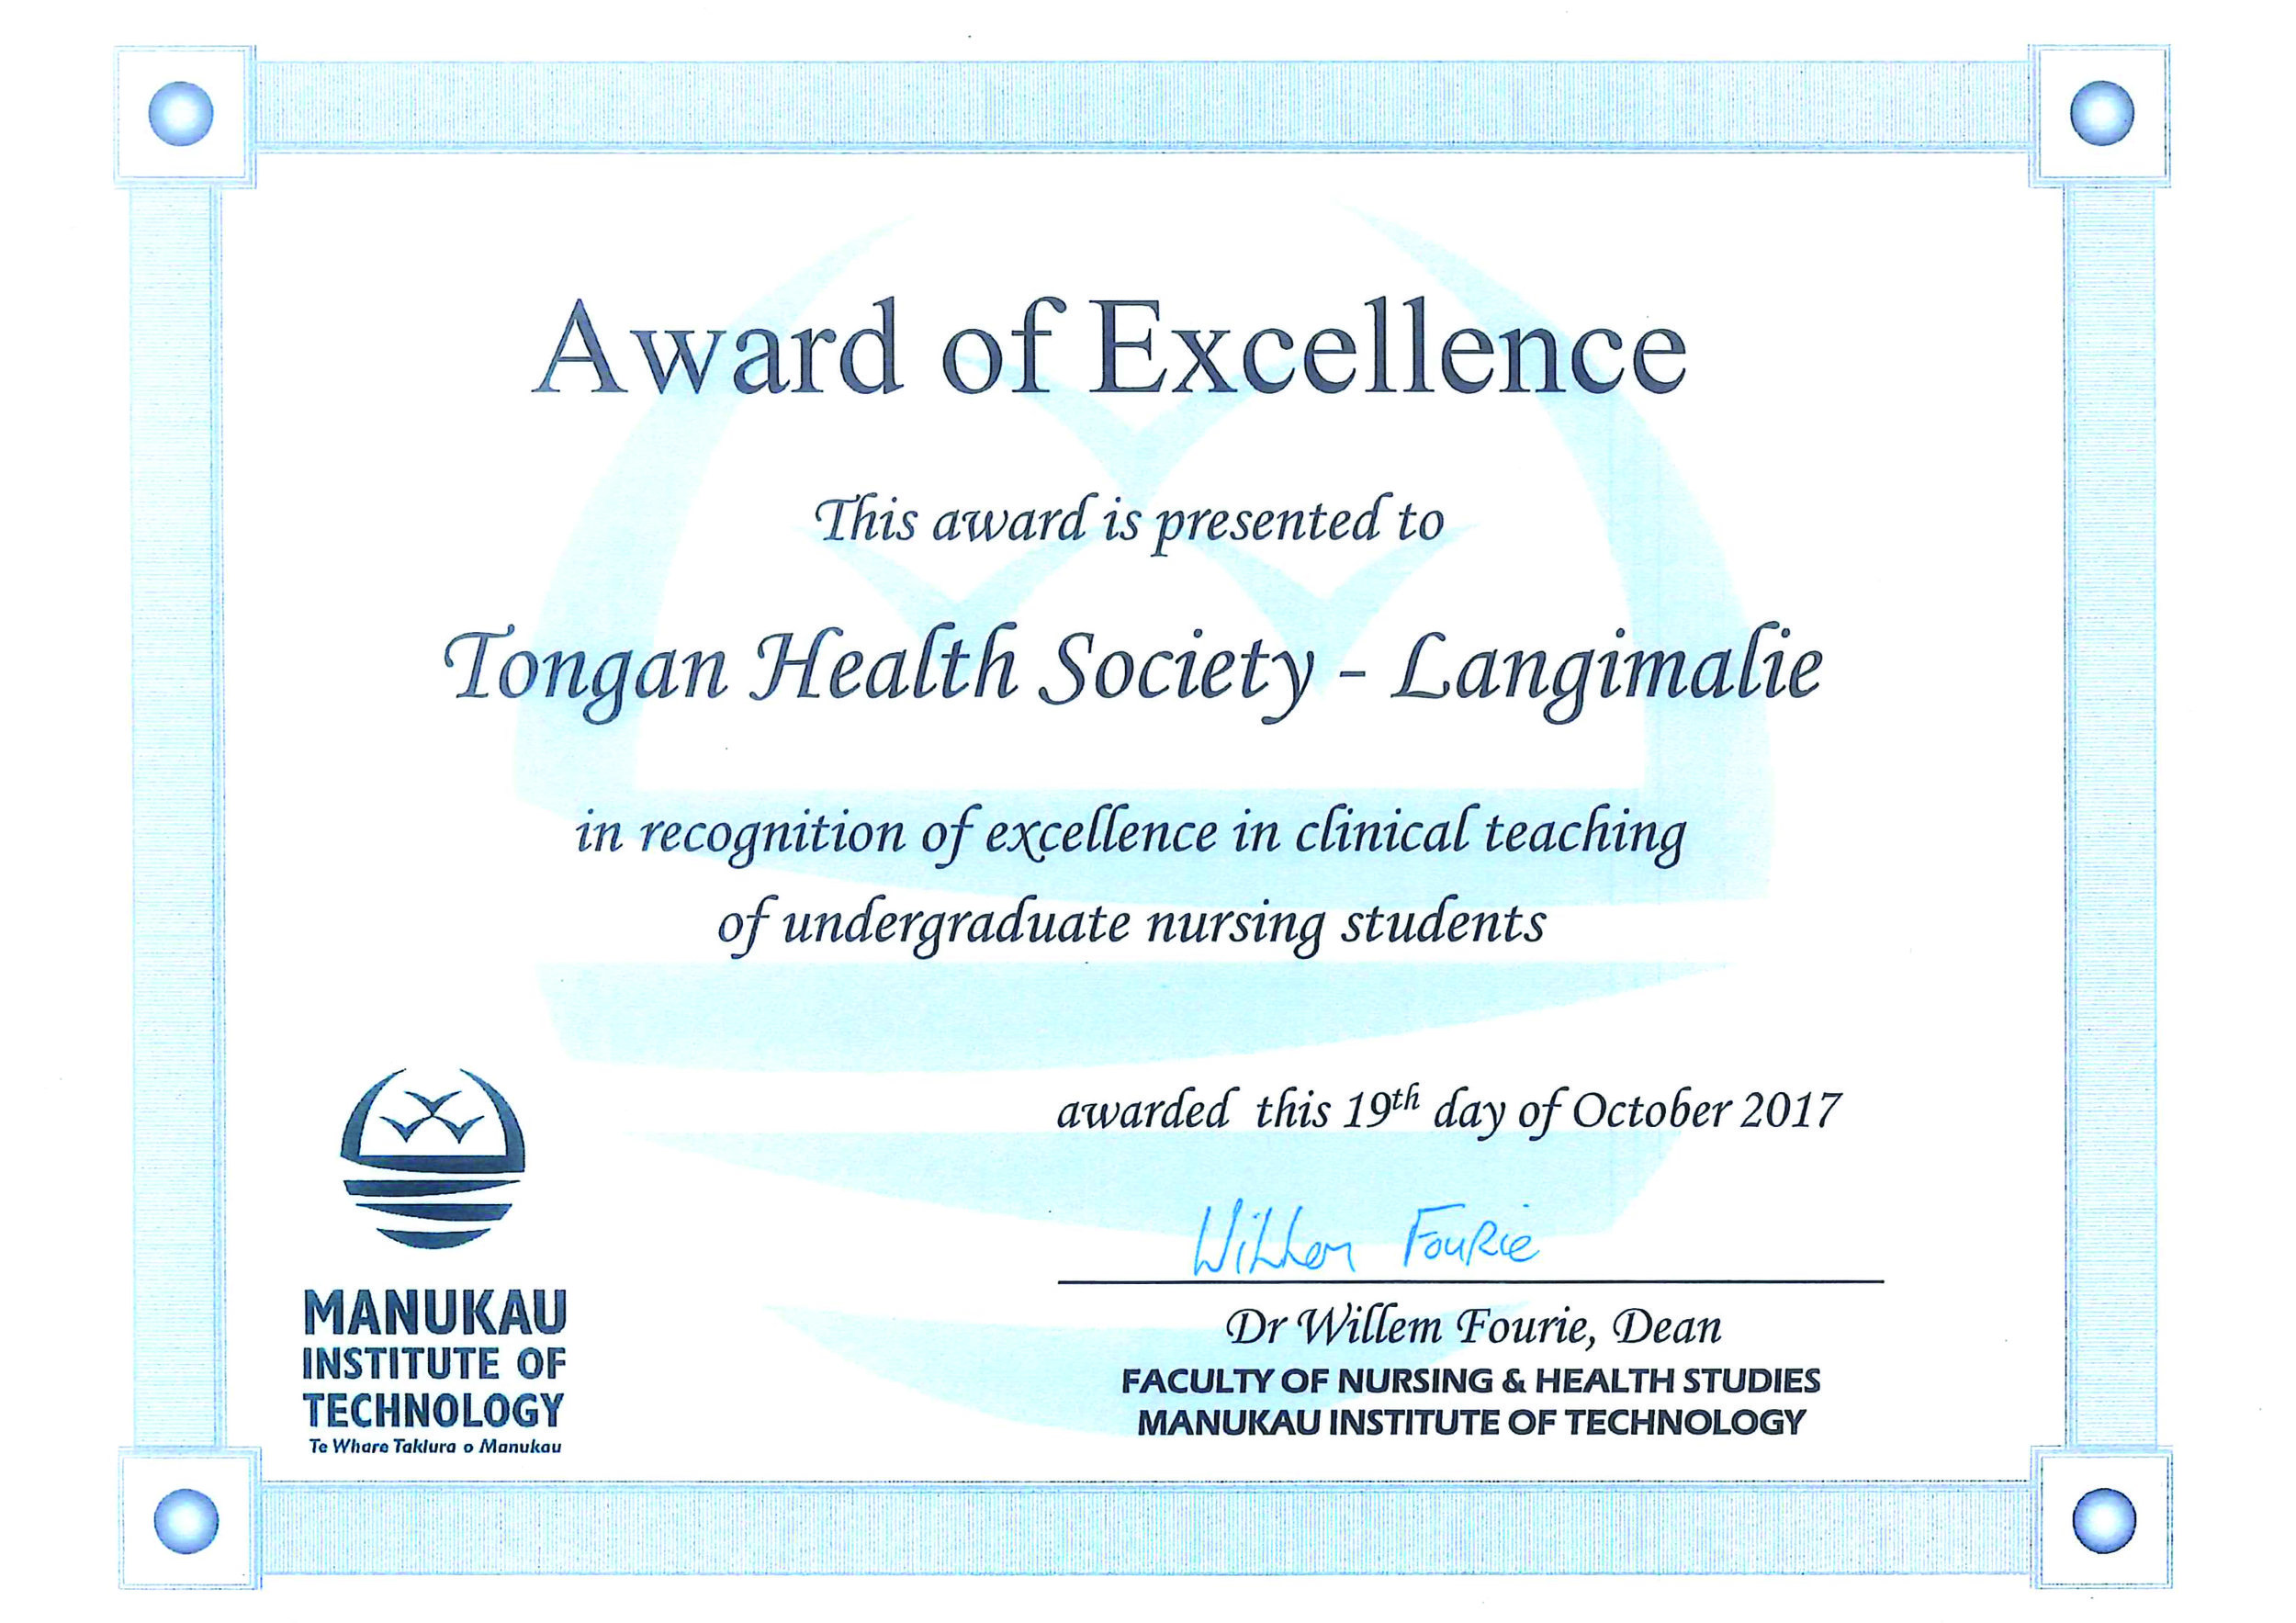 Manukau Institute of Technology Certificate of Excellence - In recognition of excellence in clinical teaching of undergraduate nursing students 2017.